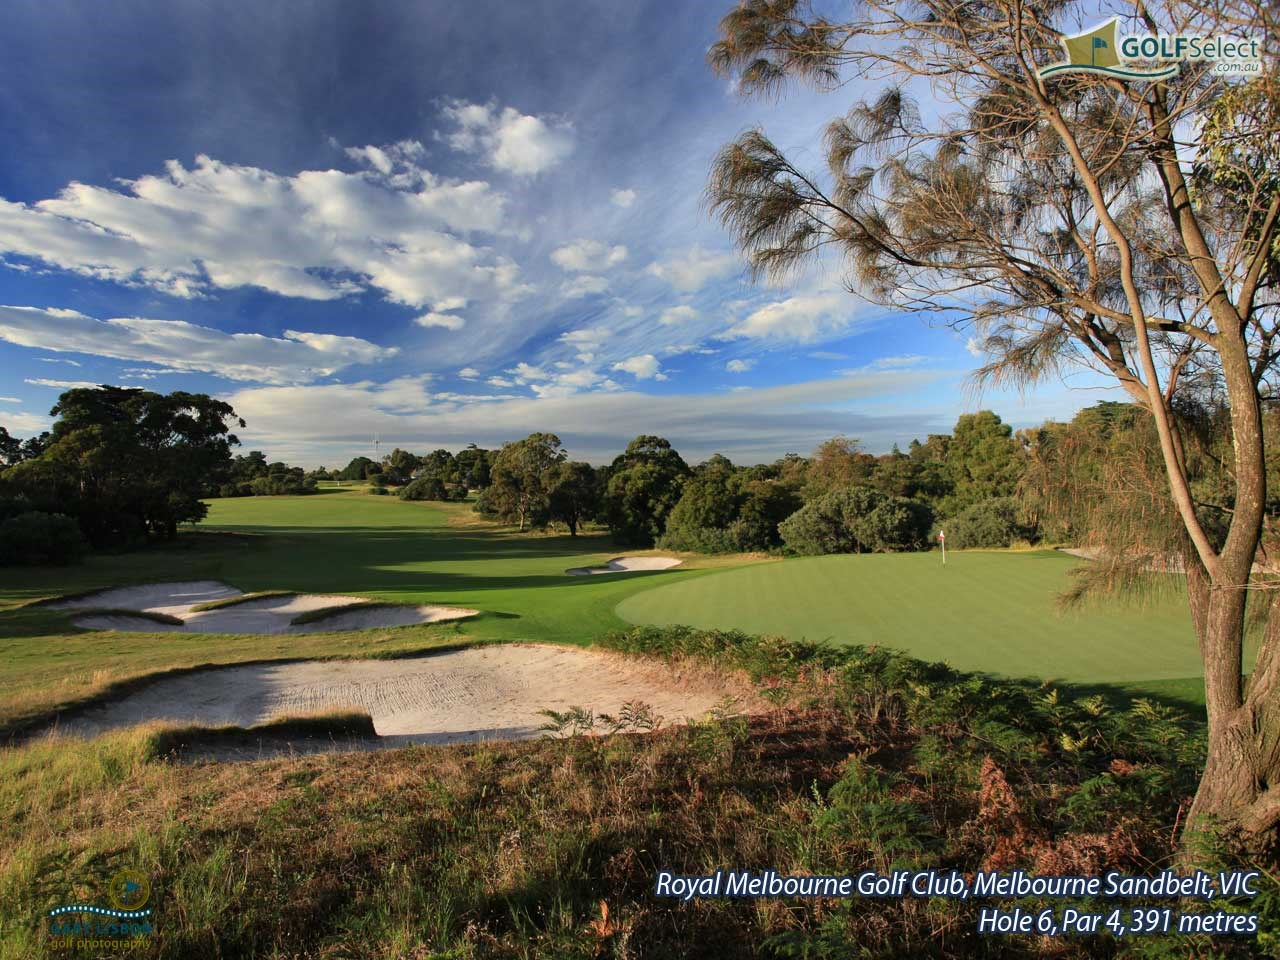 The Royal Melbourne Golf Club (West Course) Hole 6, Par 4, 391 metres